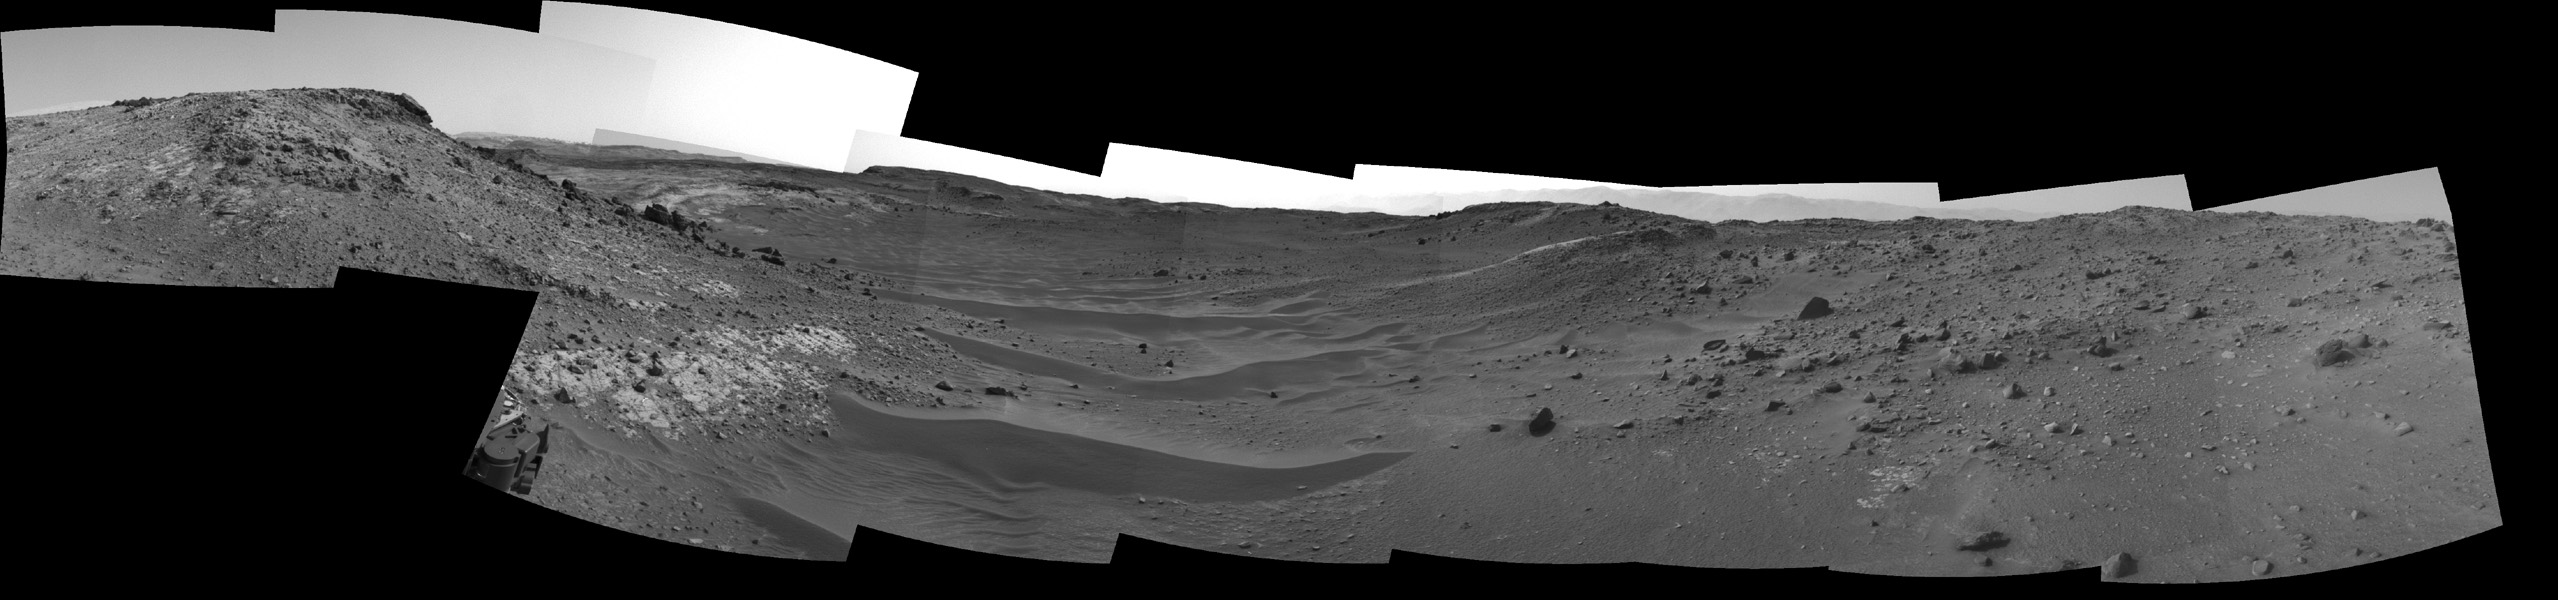 This view through a valley called 'Artist's Drive' from the Navigation Camera (Navcam) on NASA's Curiosity Mars rover shows the terrain ahead of the rover as it makes its way westward.